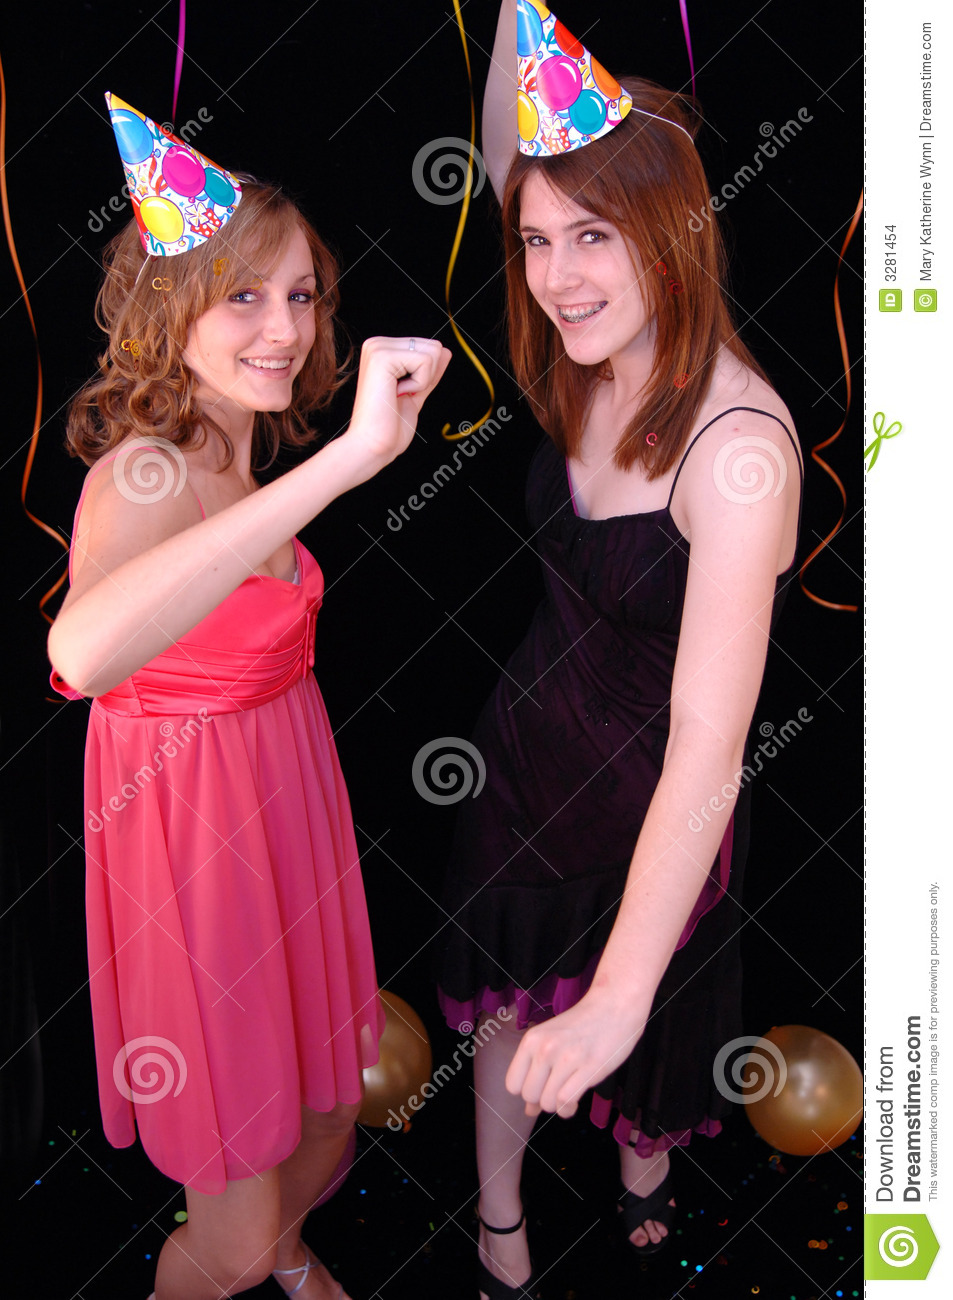 Dancing Teens In Party Hats Stock Images - Image: 3281454